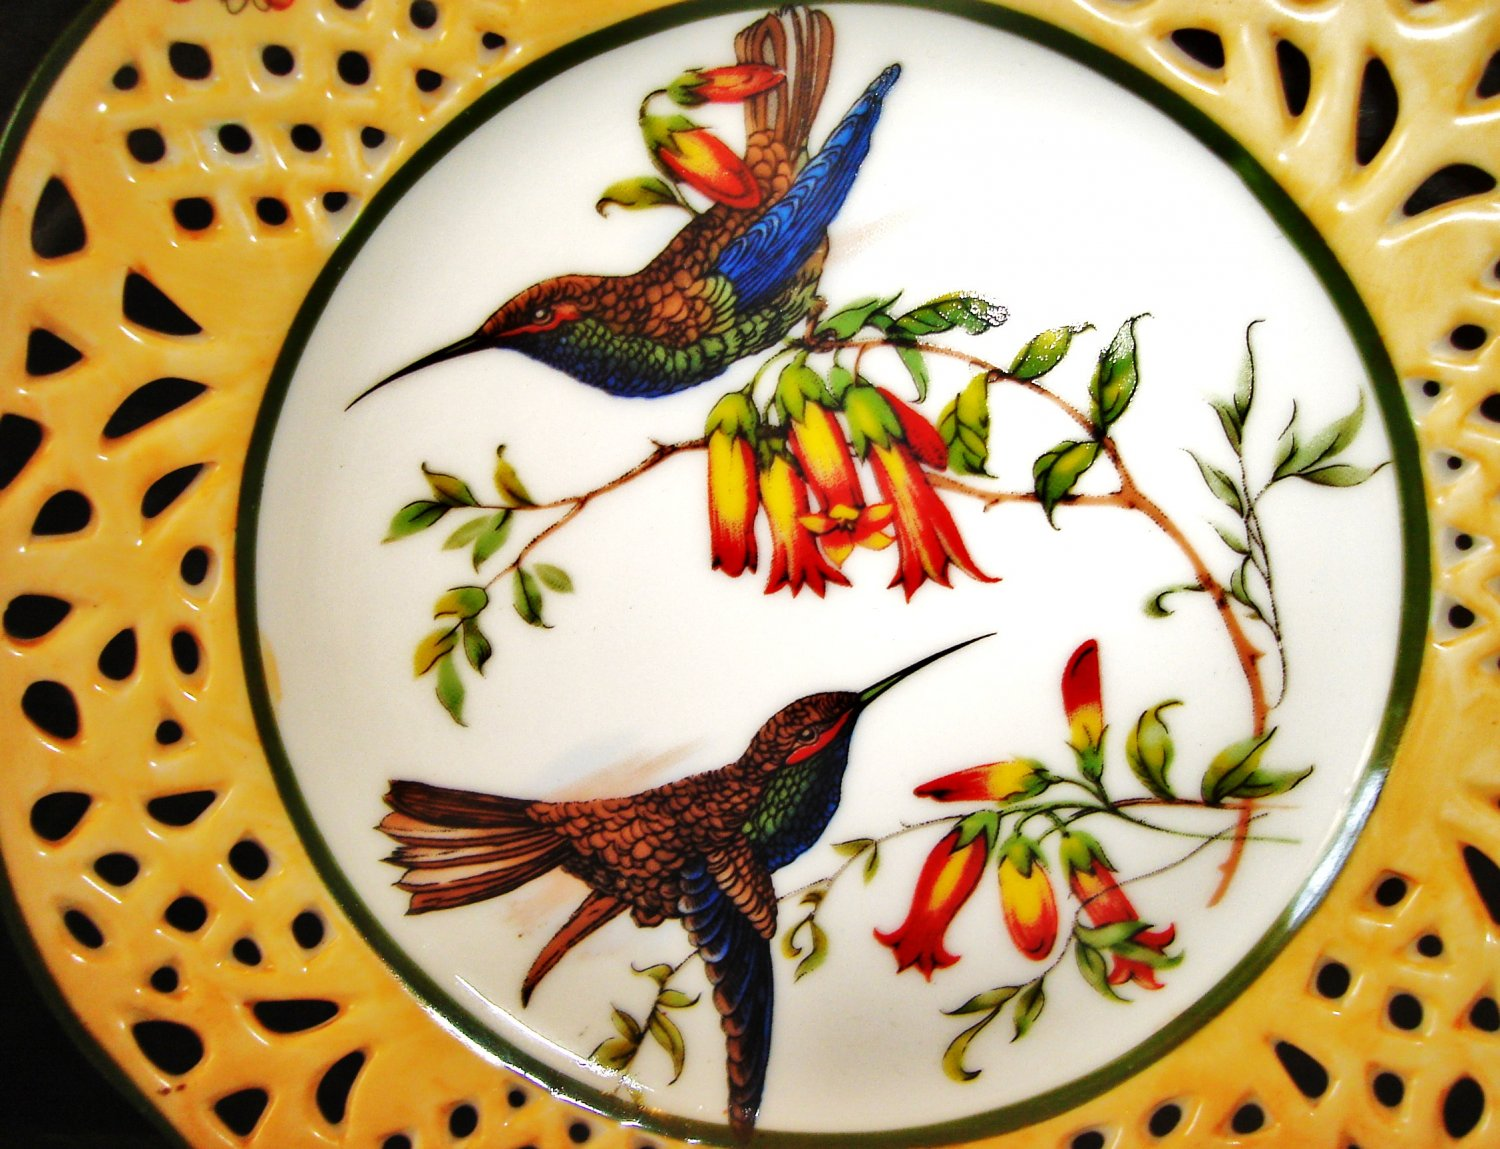 Collectible Porcelain Plate / Porcelain Art, Bird Series